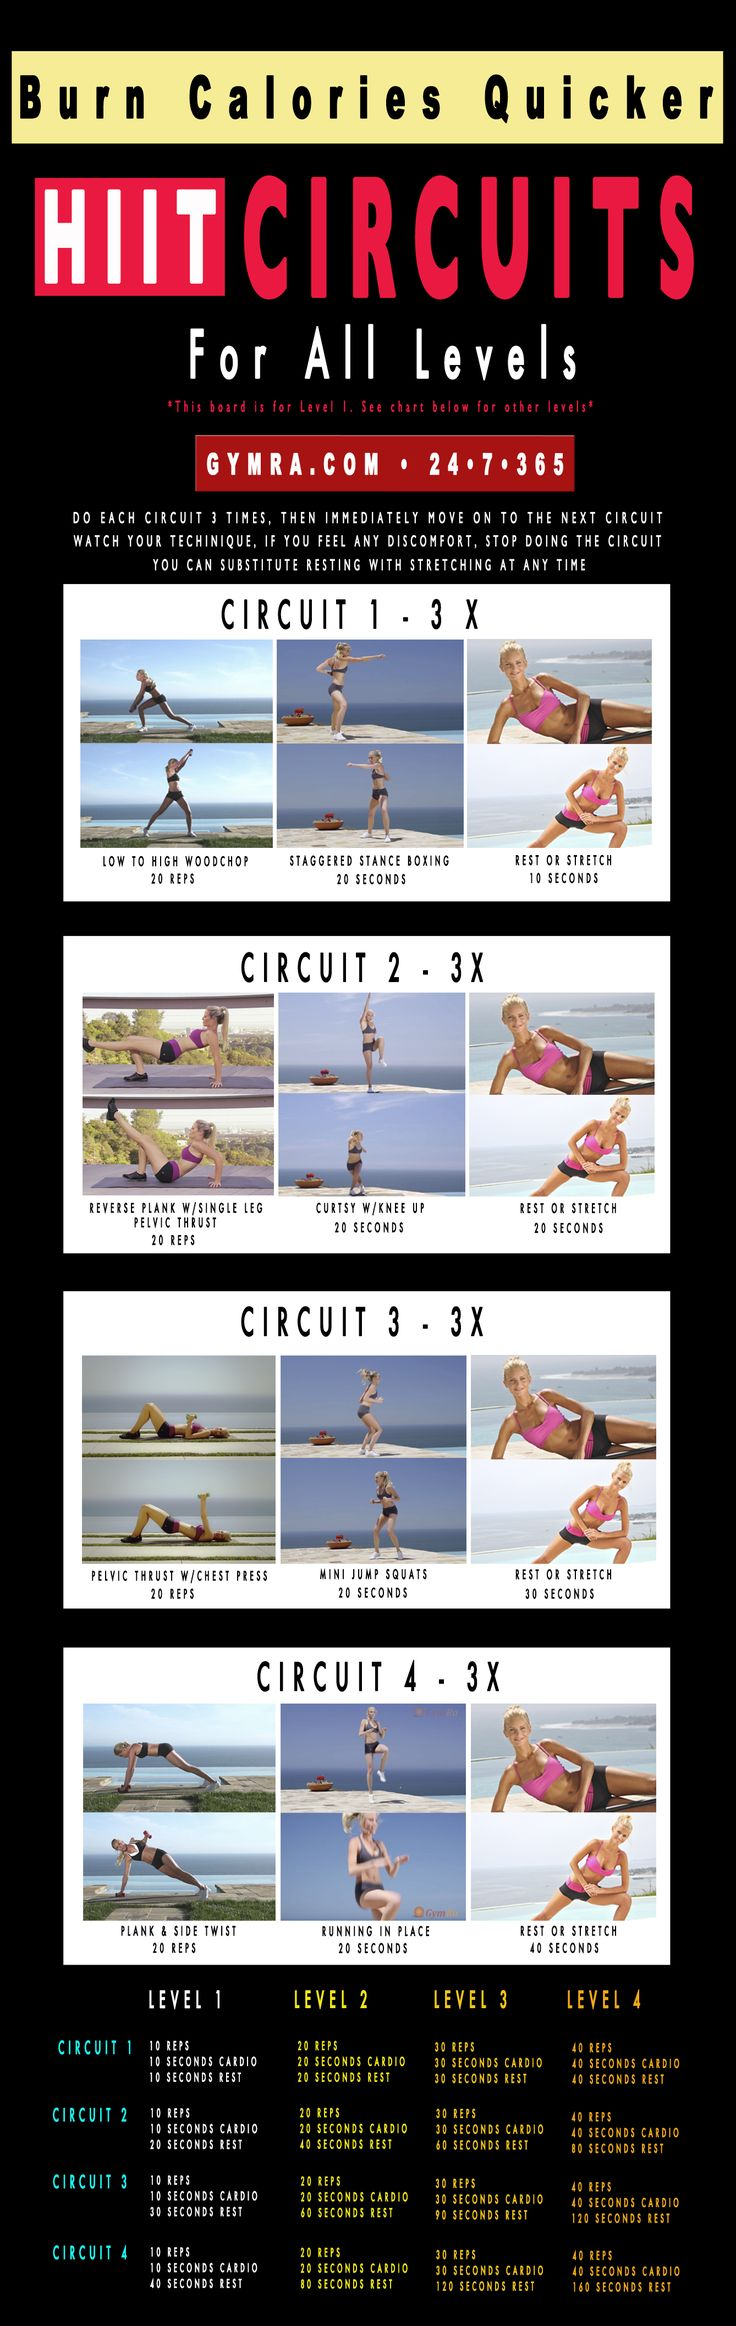 4 hour body workout pdf